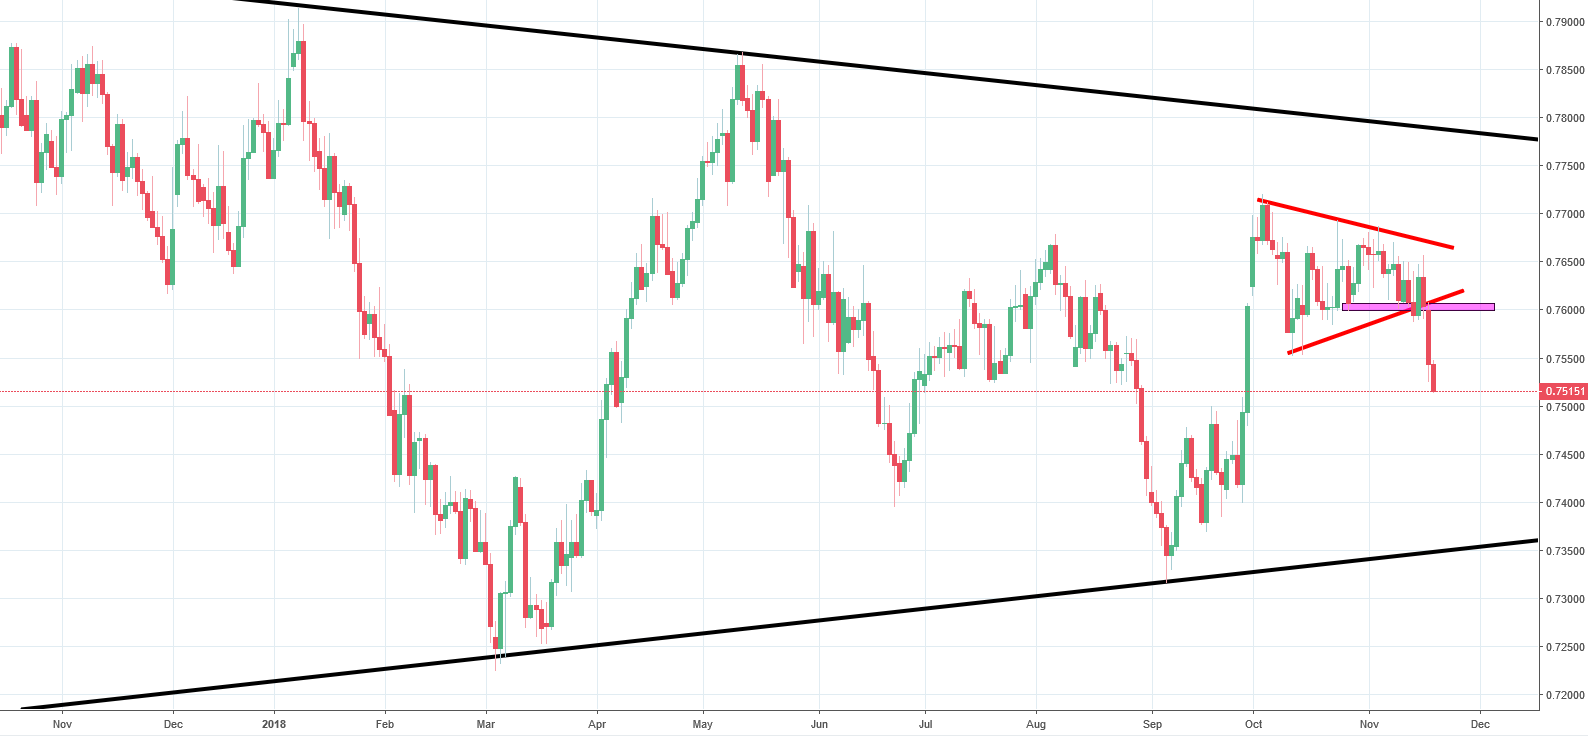 CADCHF Analysis - price in decline but no need to be hasty!